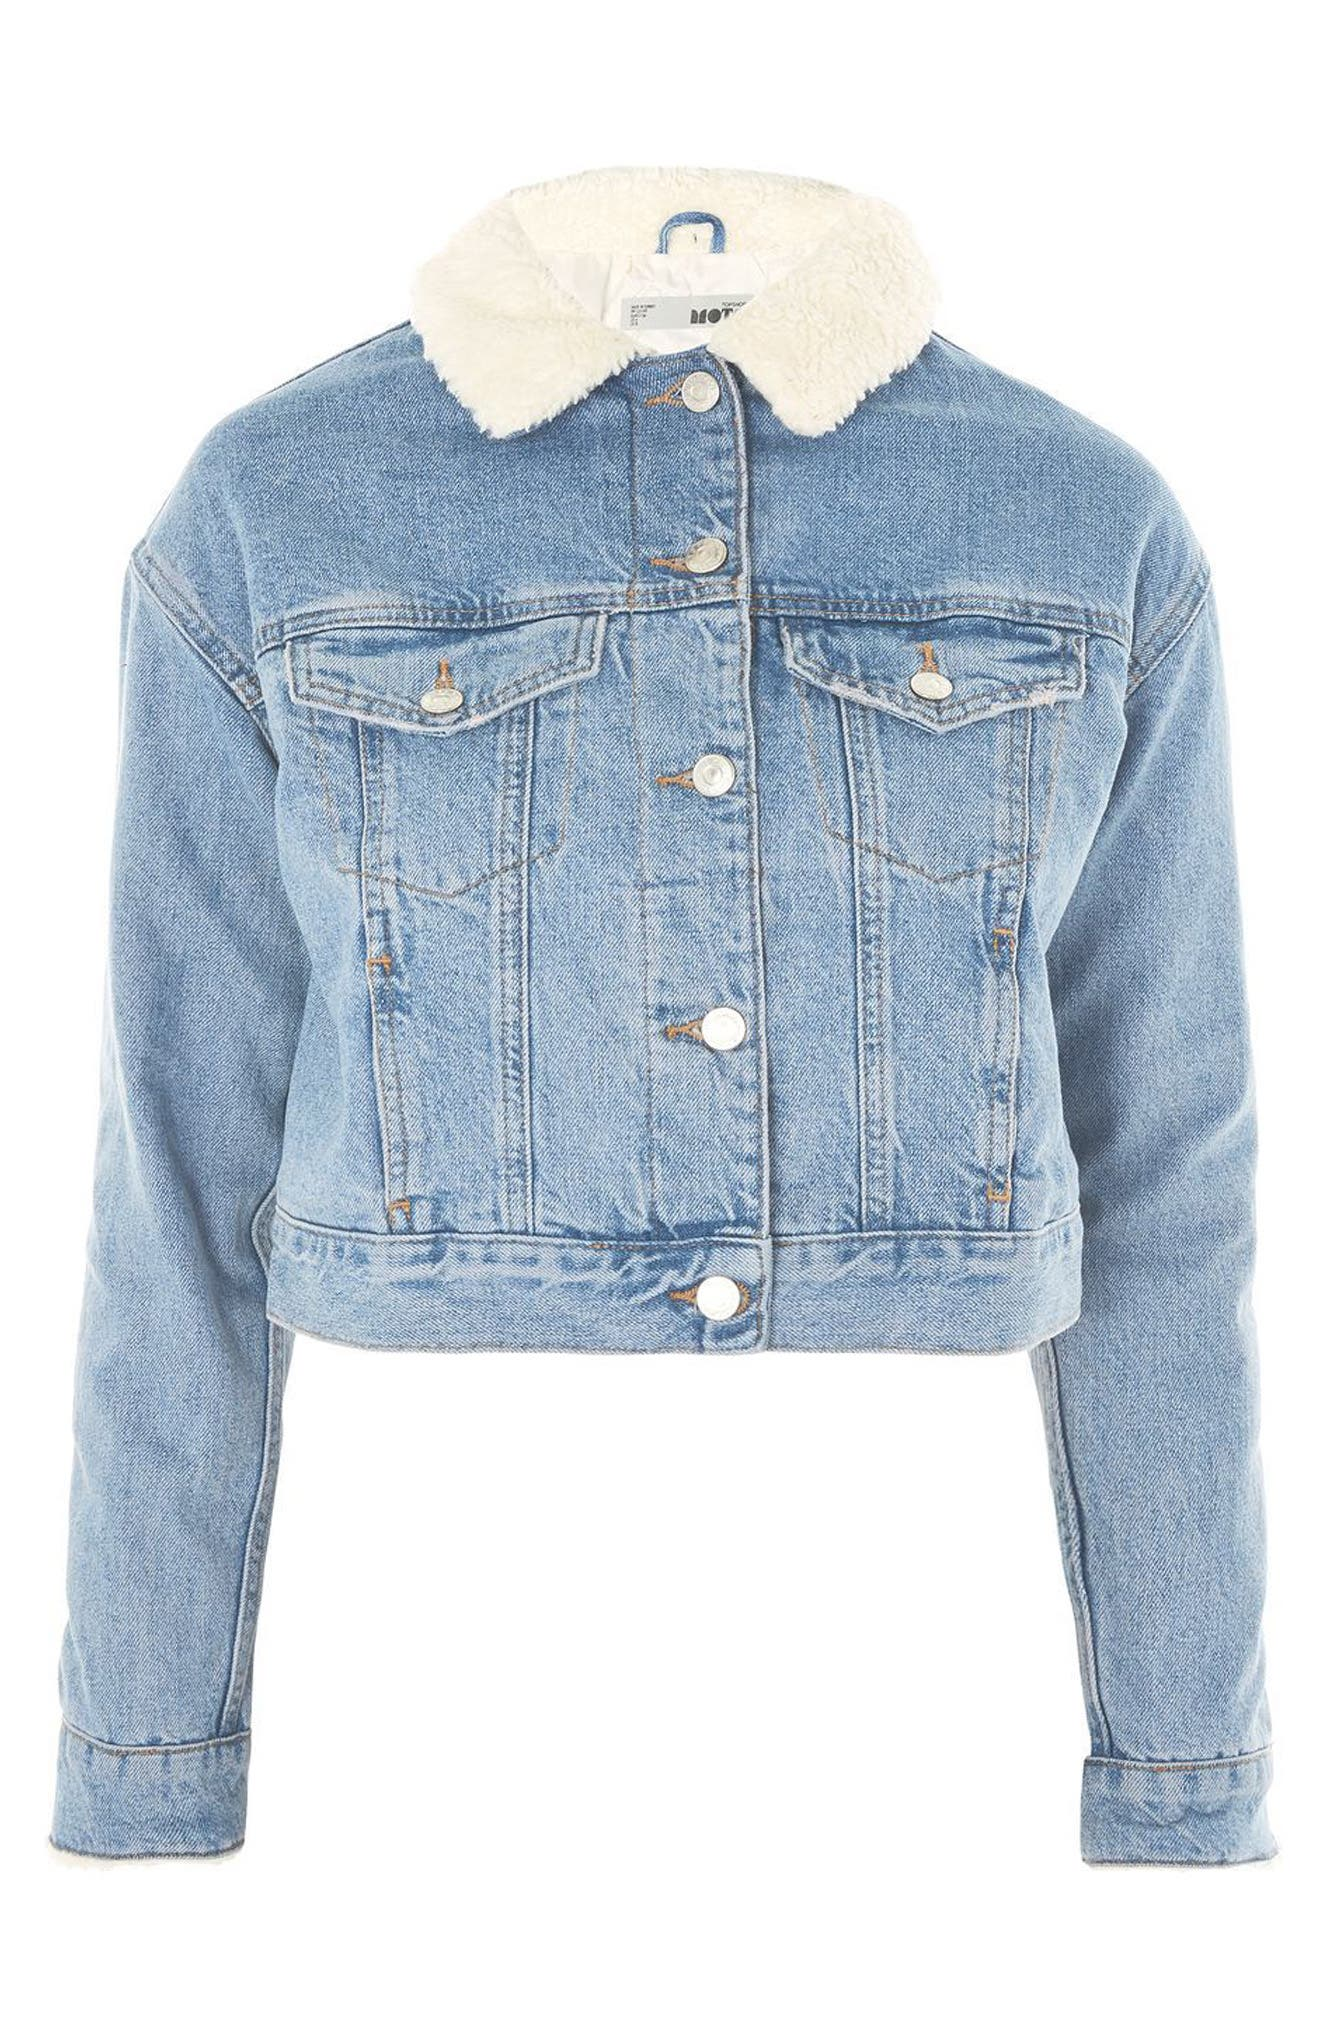 Tilda Borg Denim Jacket,                             Alternate thumbnail 4, color,                             Mid Denim